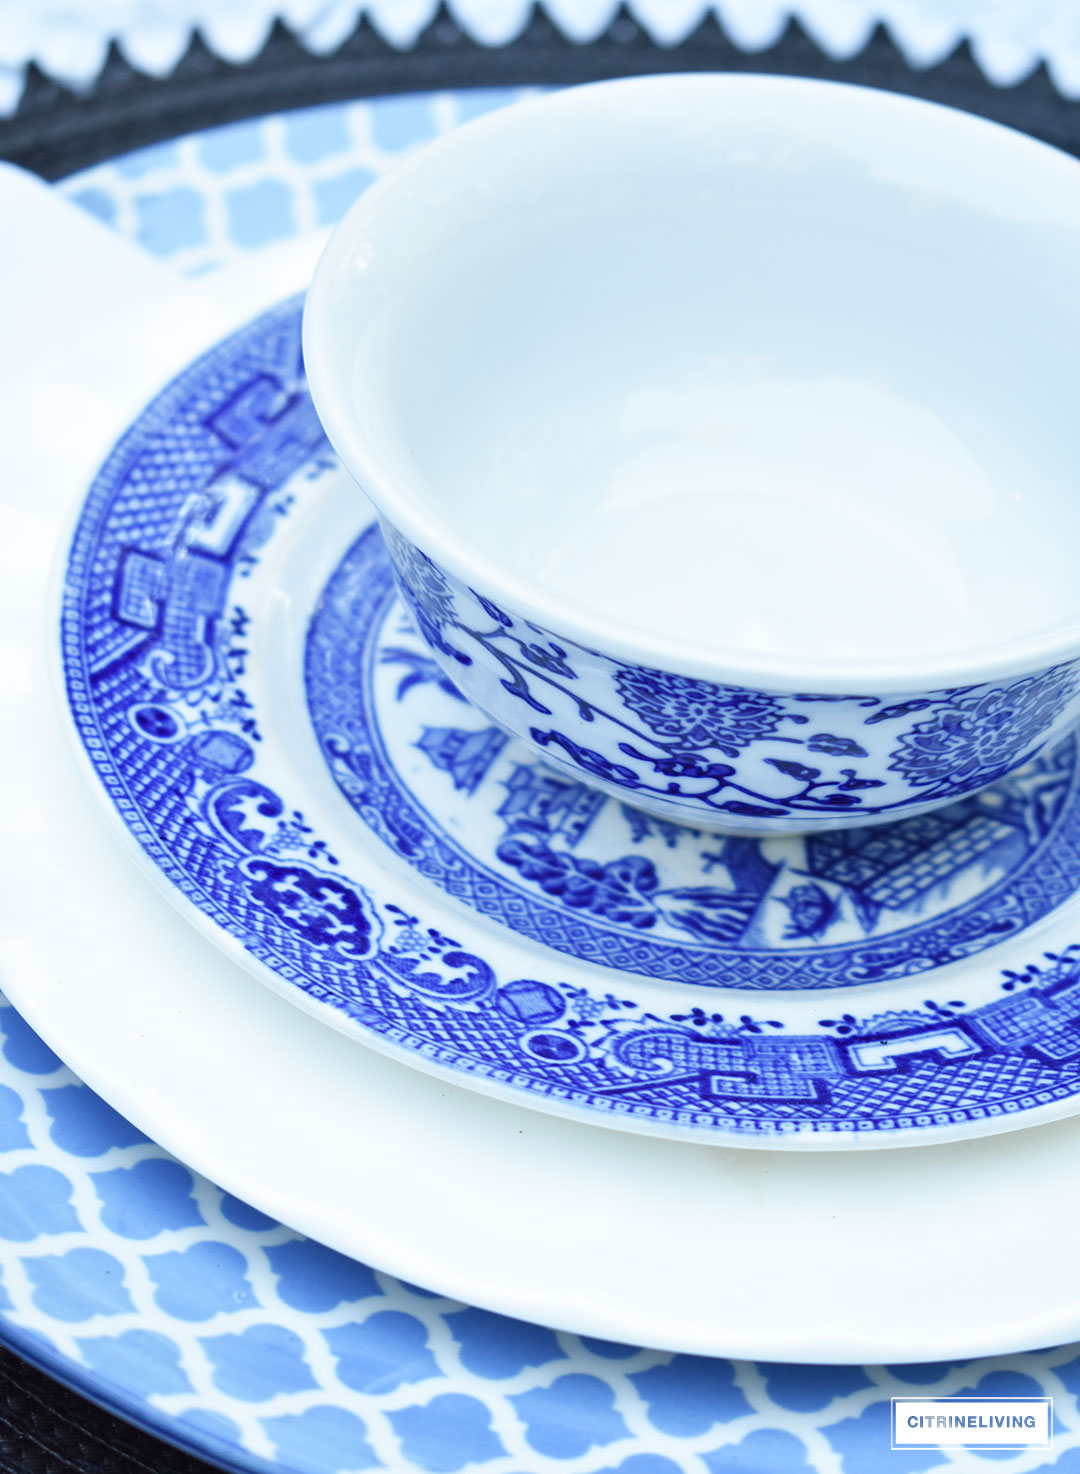 A mix of blue and white pattern on your table creates a refreshing and elegant setting for guests for Summer entertaining or any season.